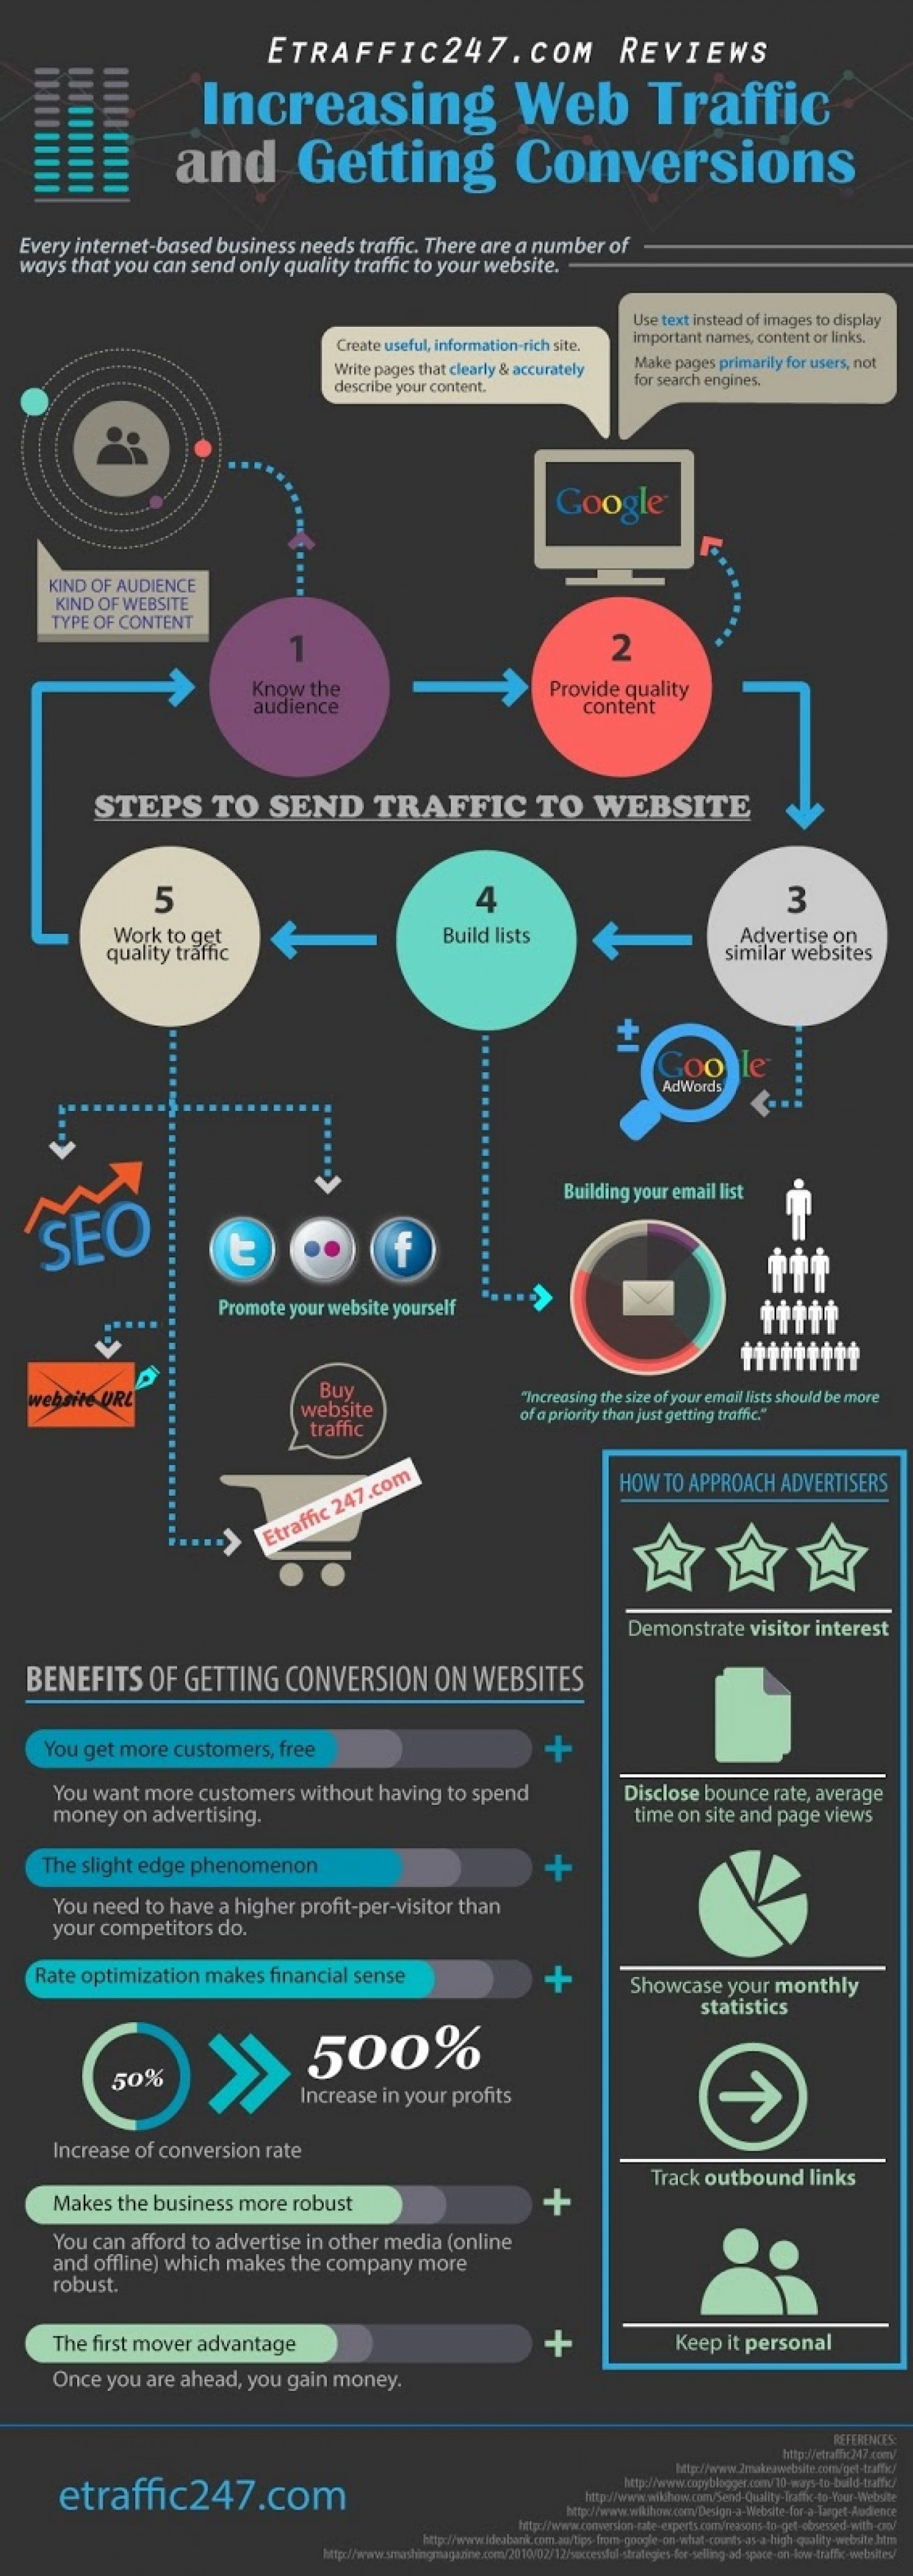 Etraffic247.com Reviews: Increasing Web Traffic and Getting Conversions Infographic